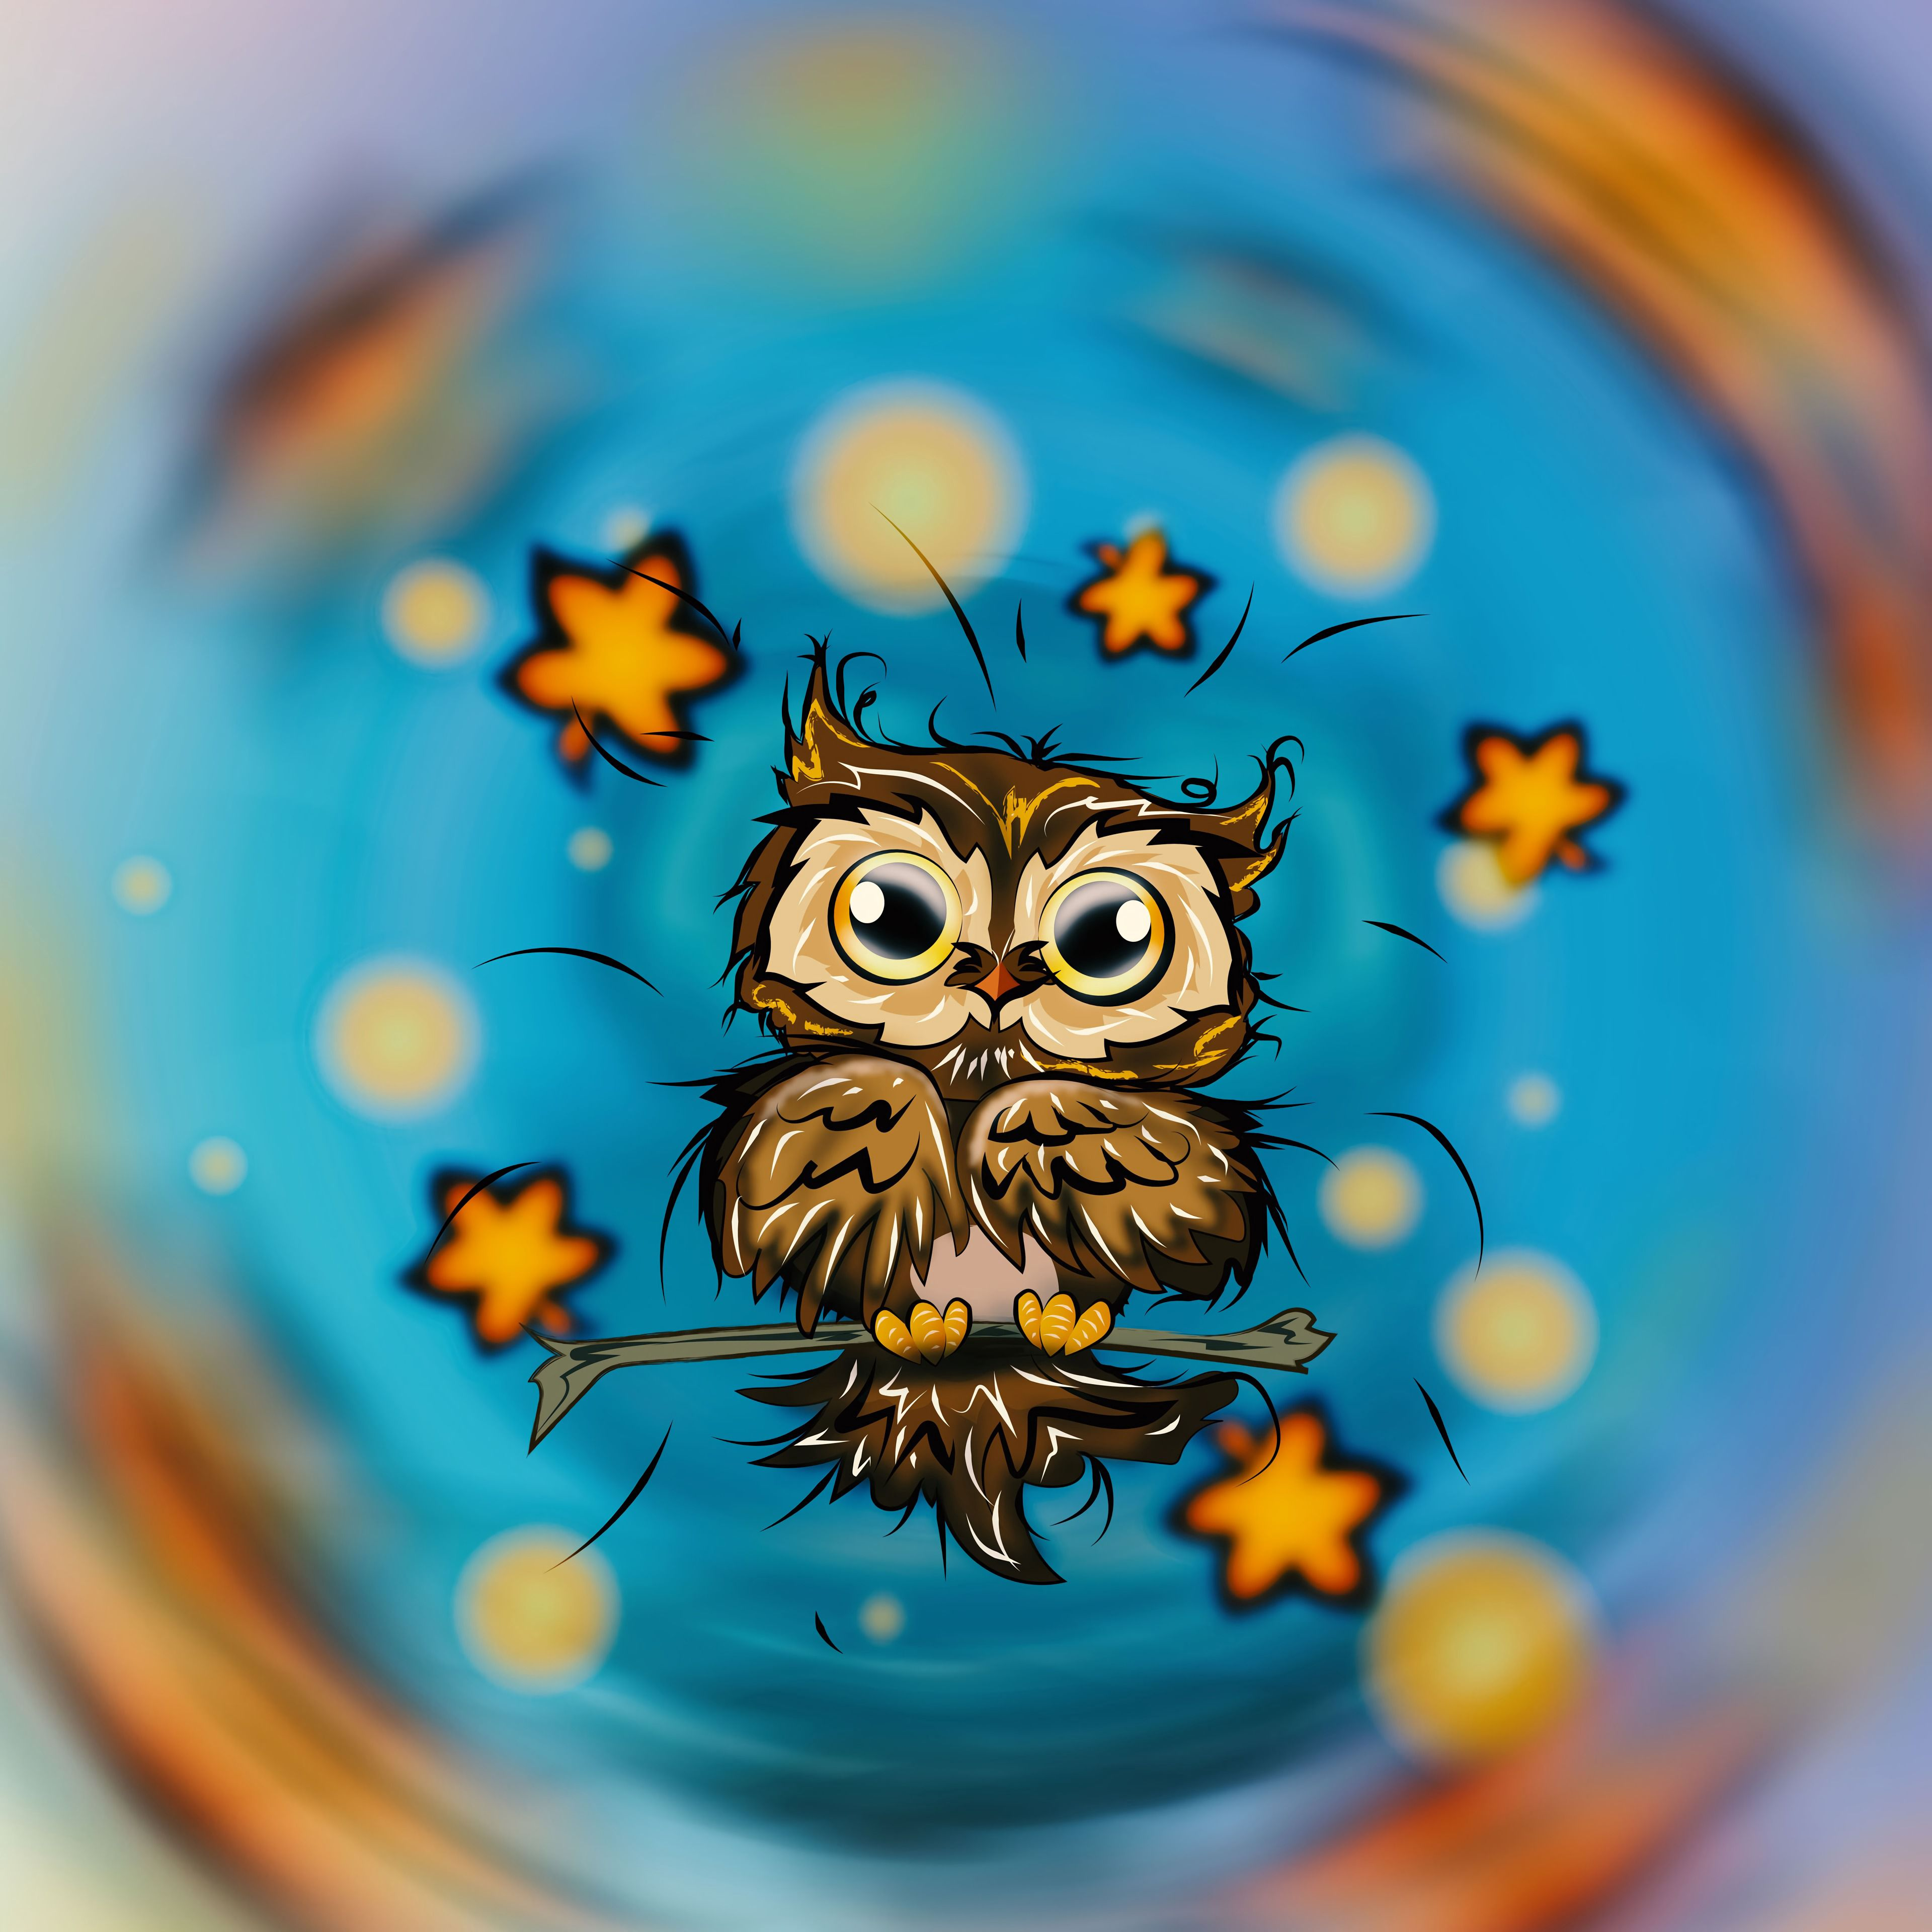 118505 download wallpaper Owl, Bird, Nice, Sweetheart, Art, Stars screensavers and pictures for free